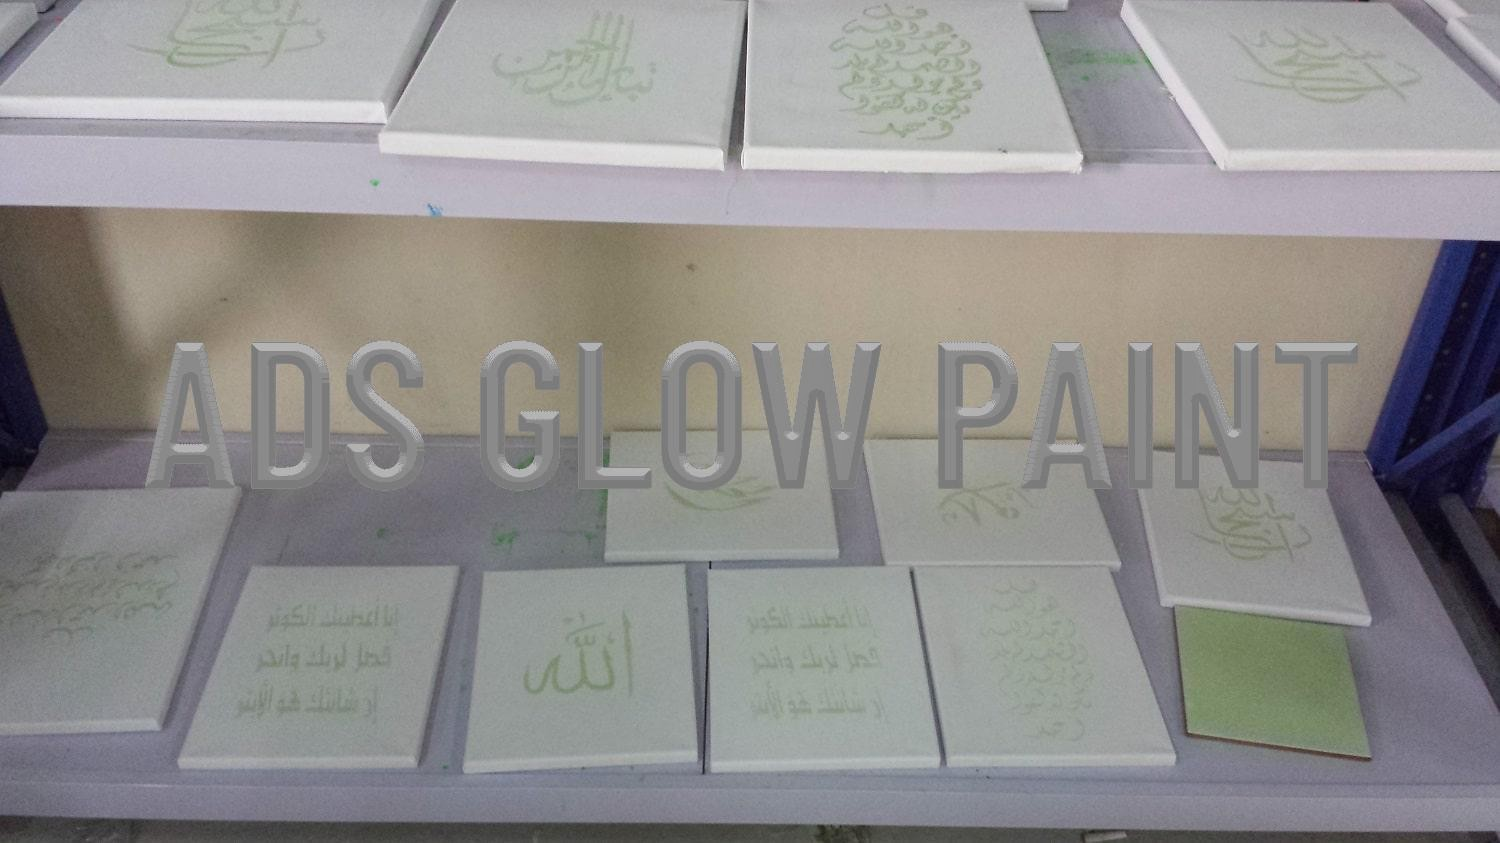 ADS Glow Paint Ready Made Images V3 1